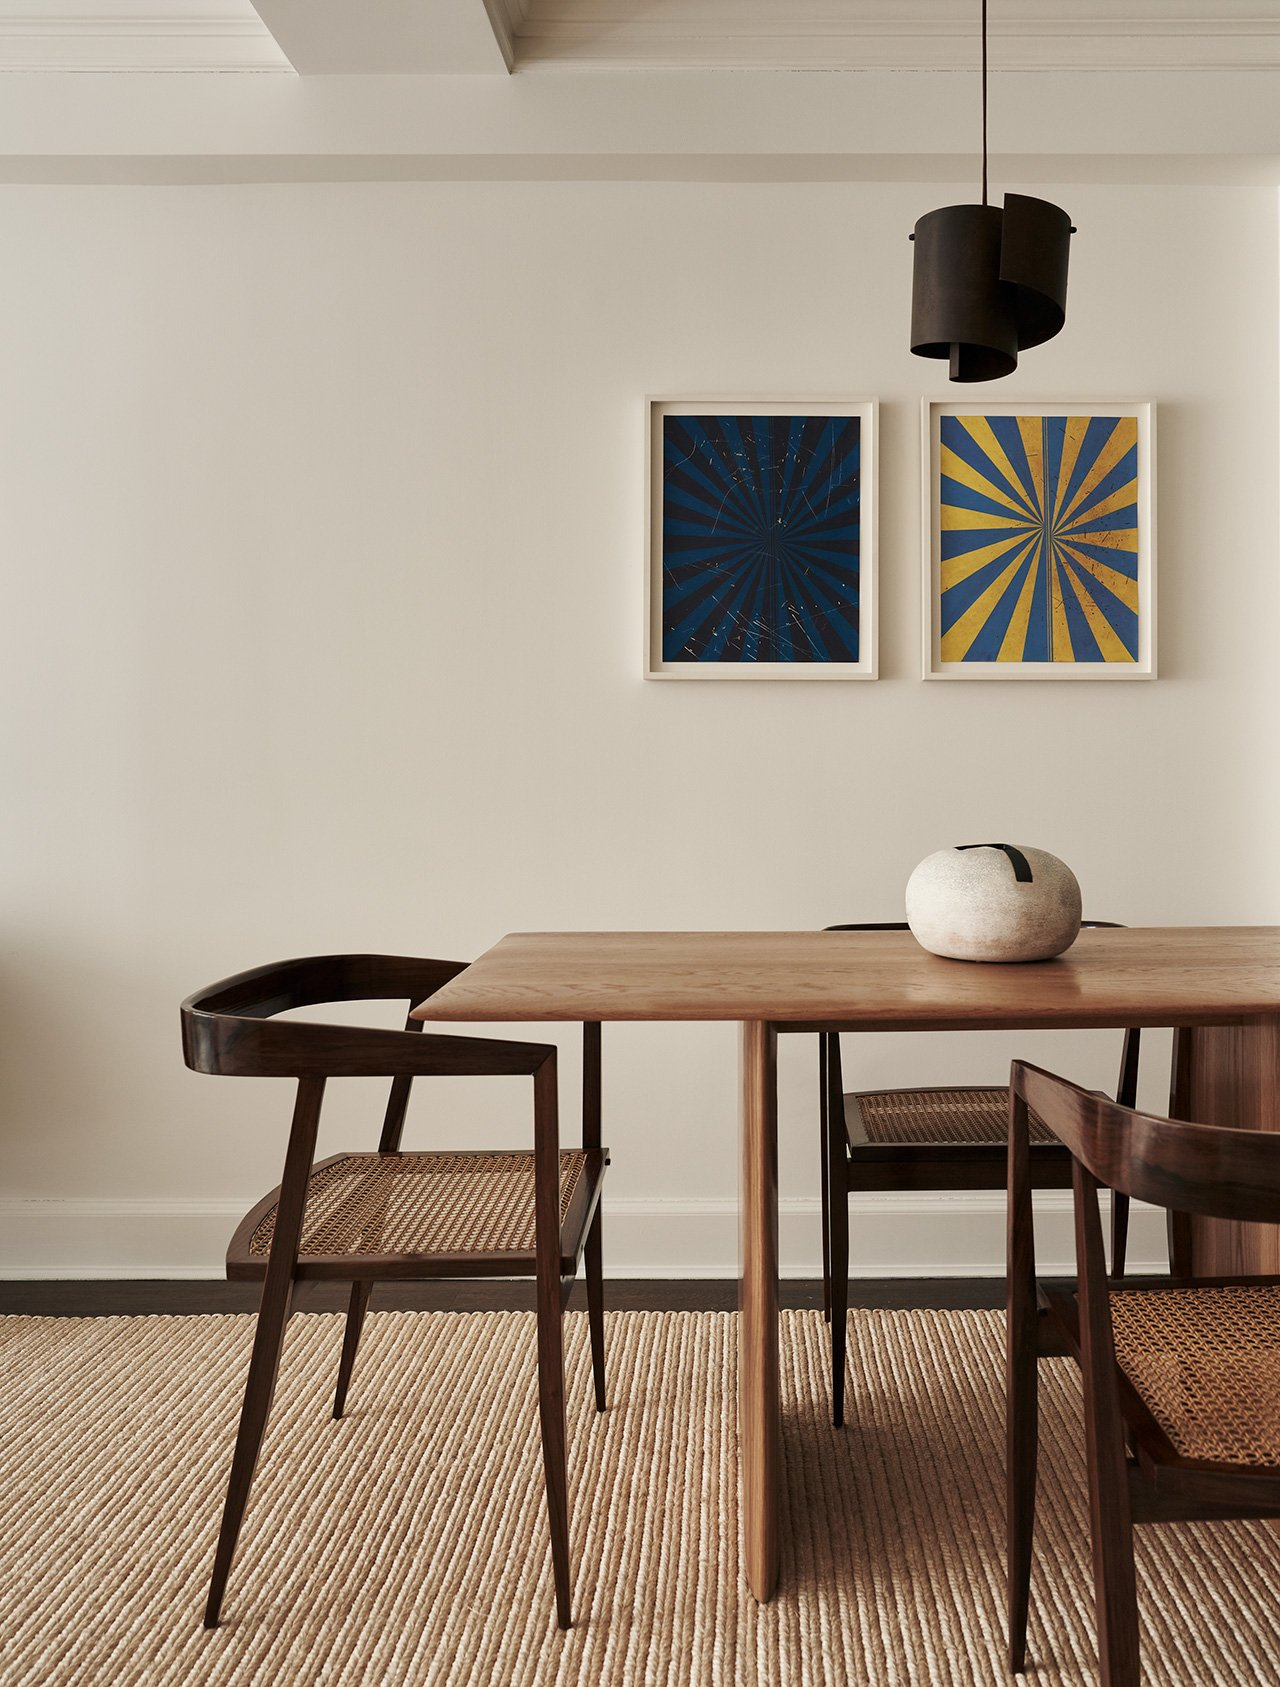 Photography by Adrian Gaut. Styling by Colin King. Featured: Bespoke dining table bySandra Weingort fabricated by Casey Johnson Studio; Dining chairs byJoaquim Tenreiro circa 1960 from Bossa Furniture; Pendant lamp byJørn Utzon circa 1960 from Galerie Half; Vase byHeyja Do from Dear Rivington; Artwork (Diptych) byMark Grotjahn from Anton Kern Gallery.